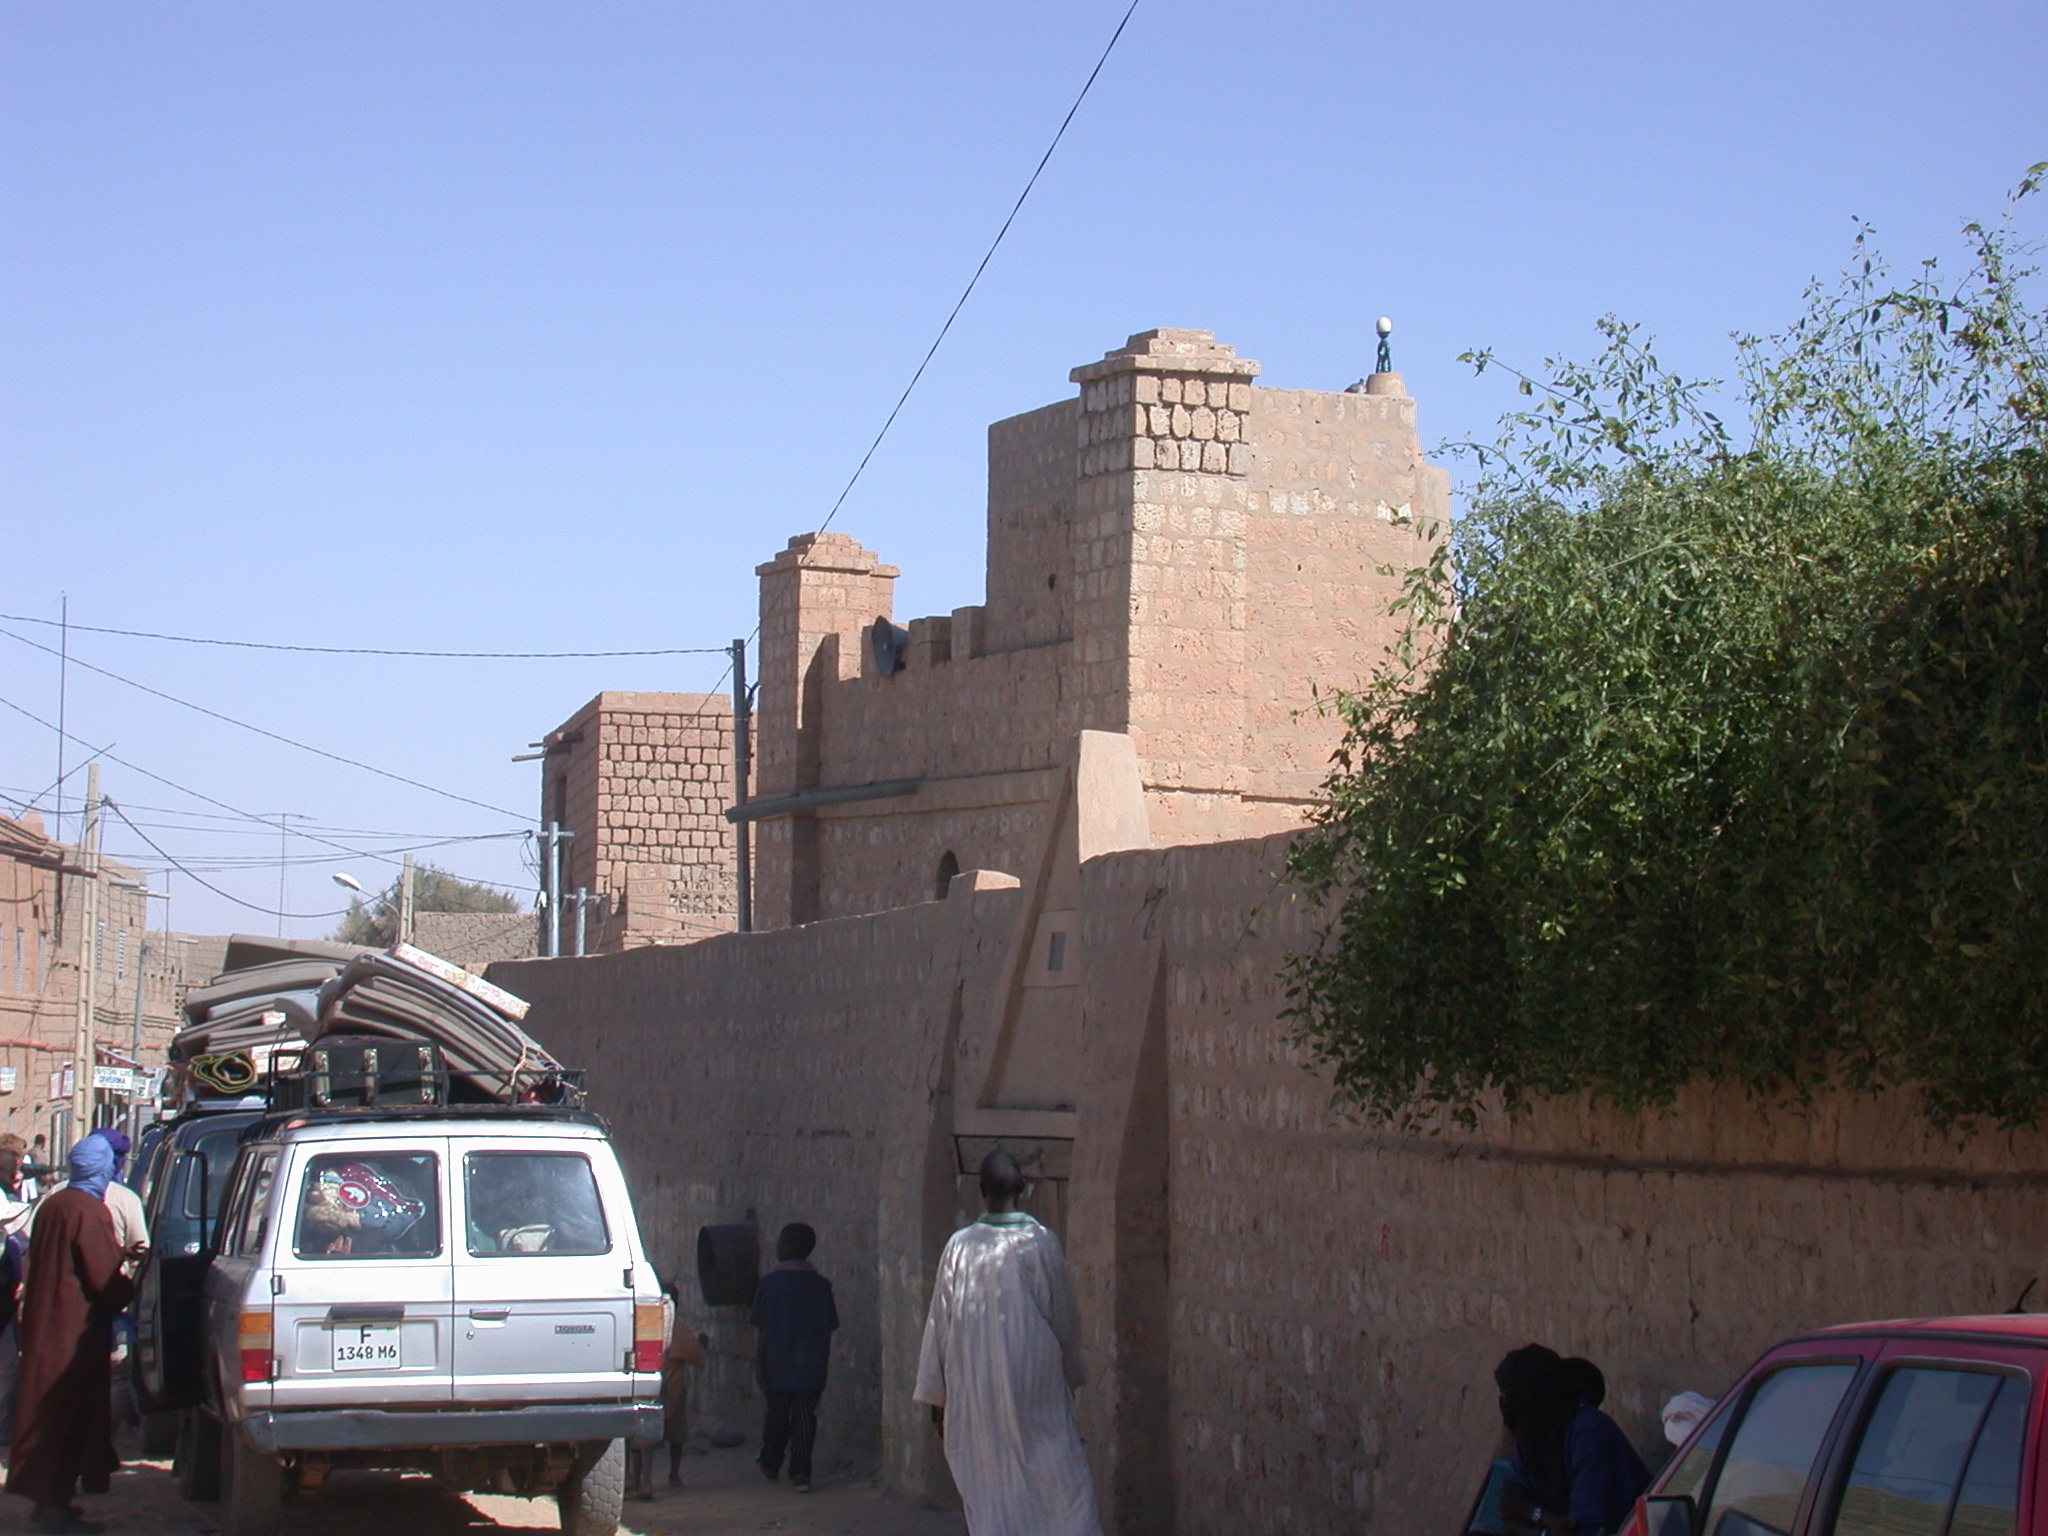 View of Ostrich-Egg on Minaret of Mosque, Town Square, Timbuktu, Mali